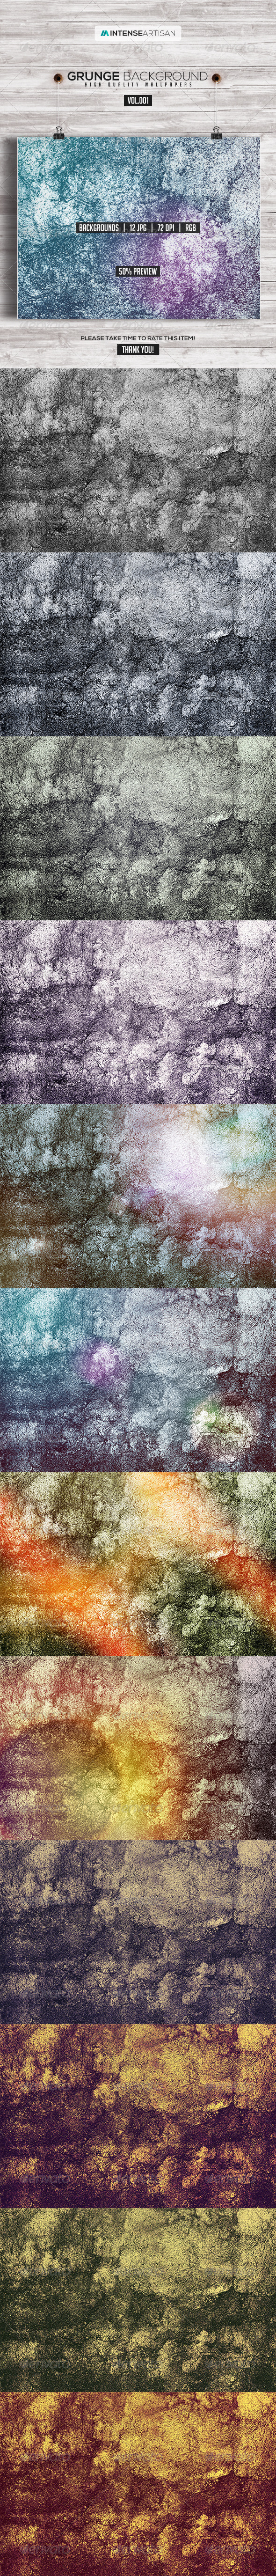 GraphicRiver 12 Grunge Background Vol.1 7837677